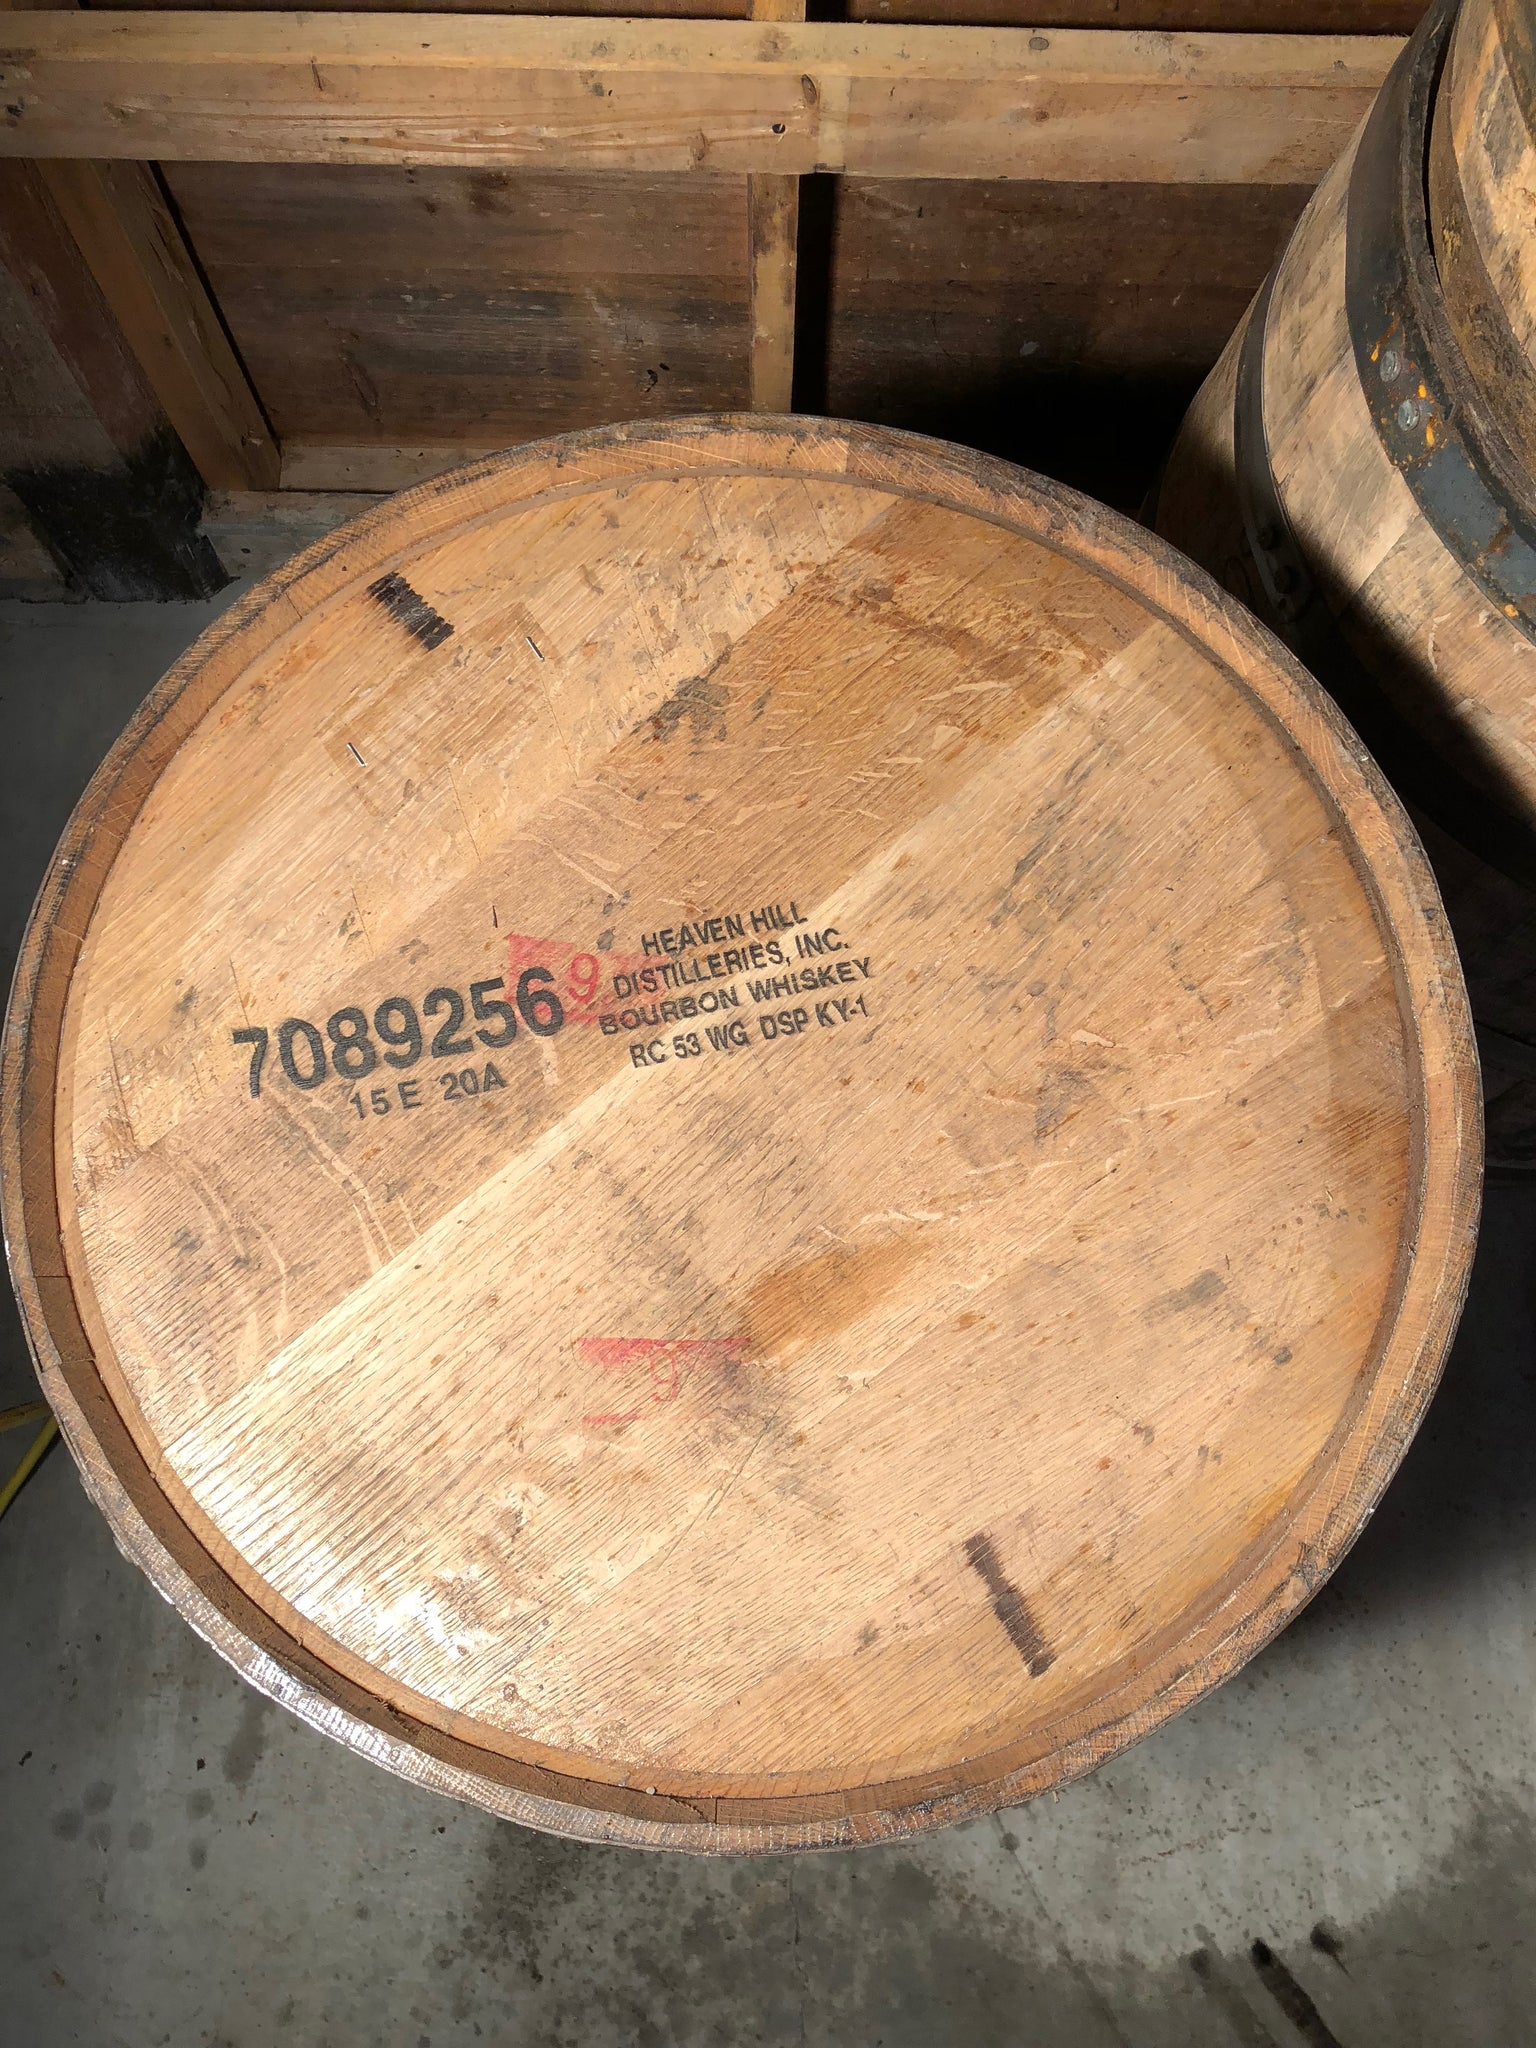 Heaven Hill Bourbon Barrel